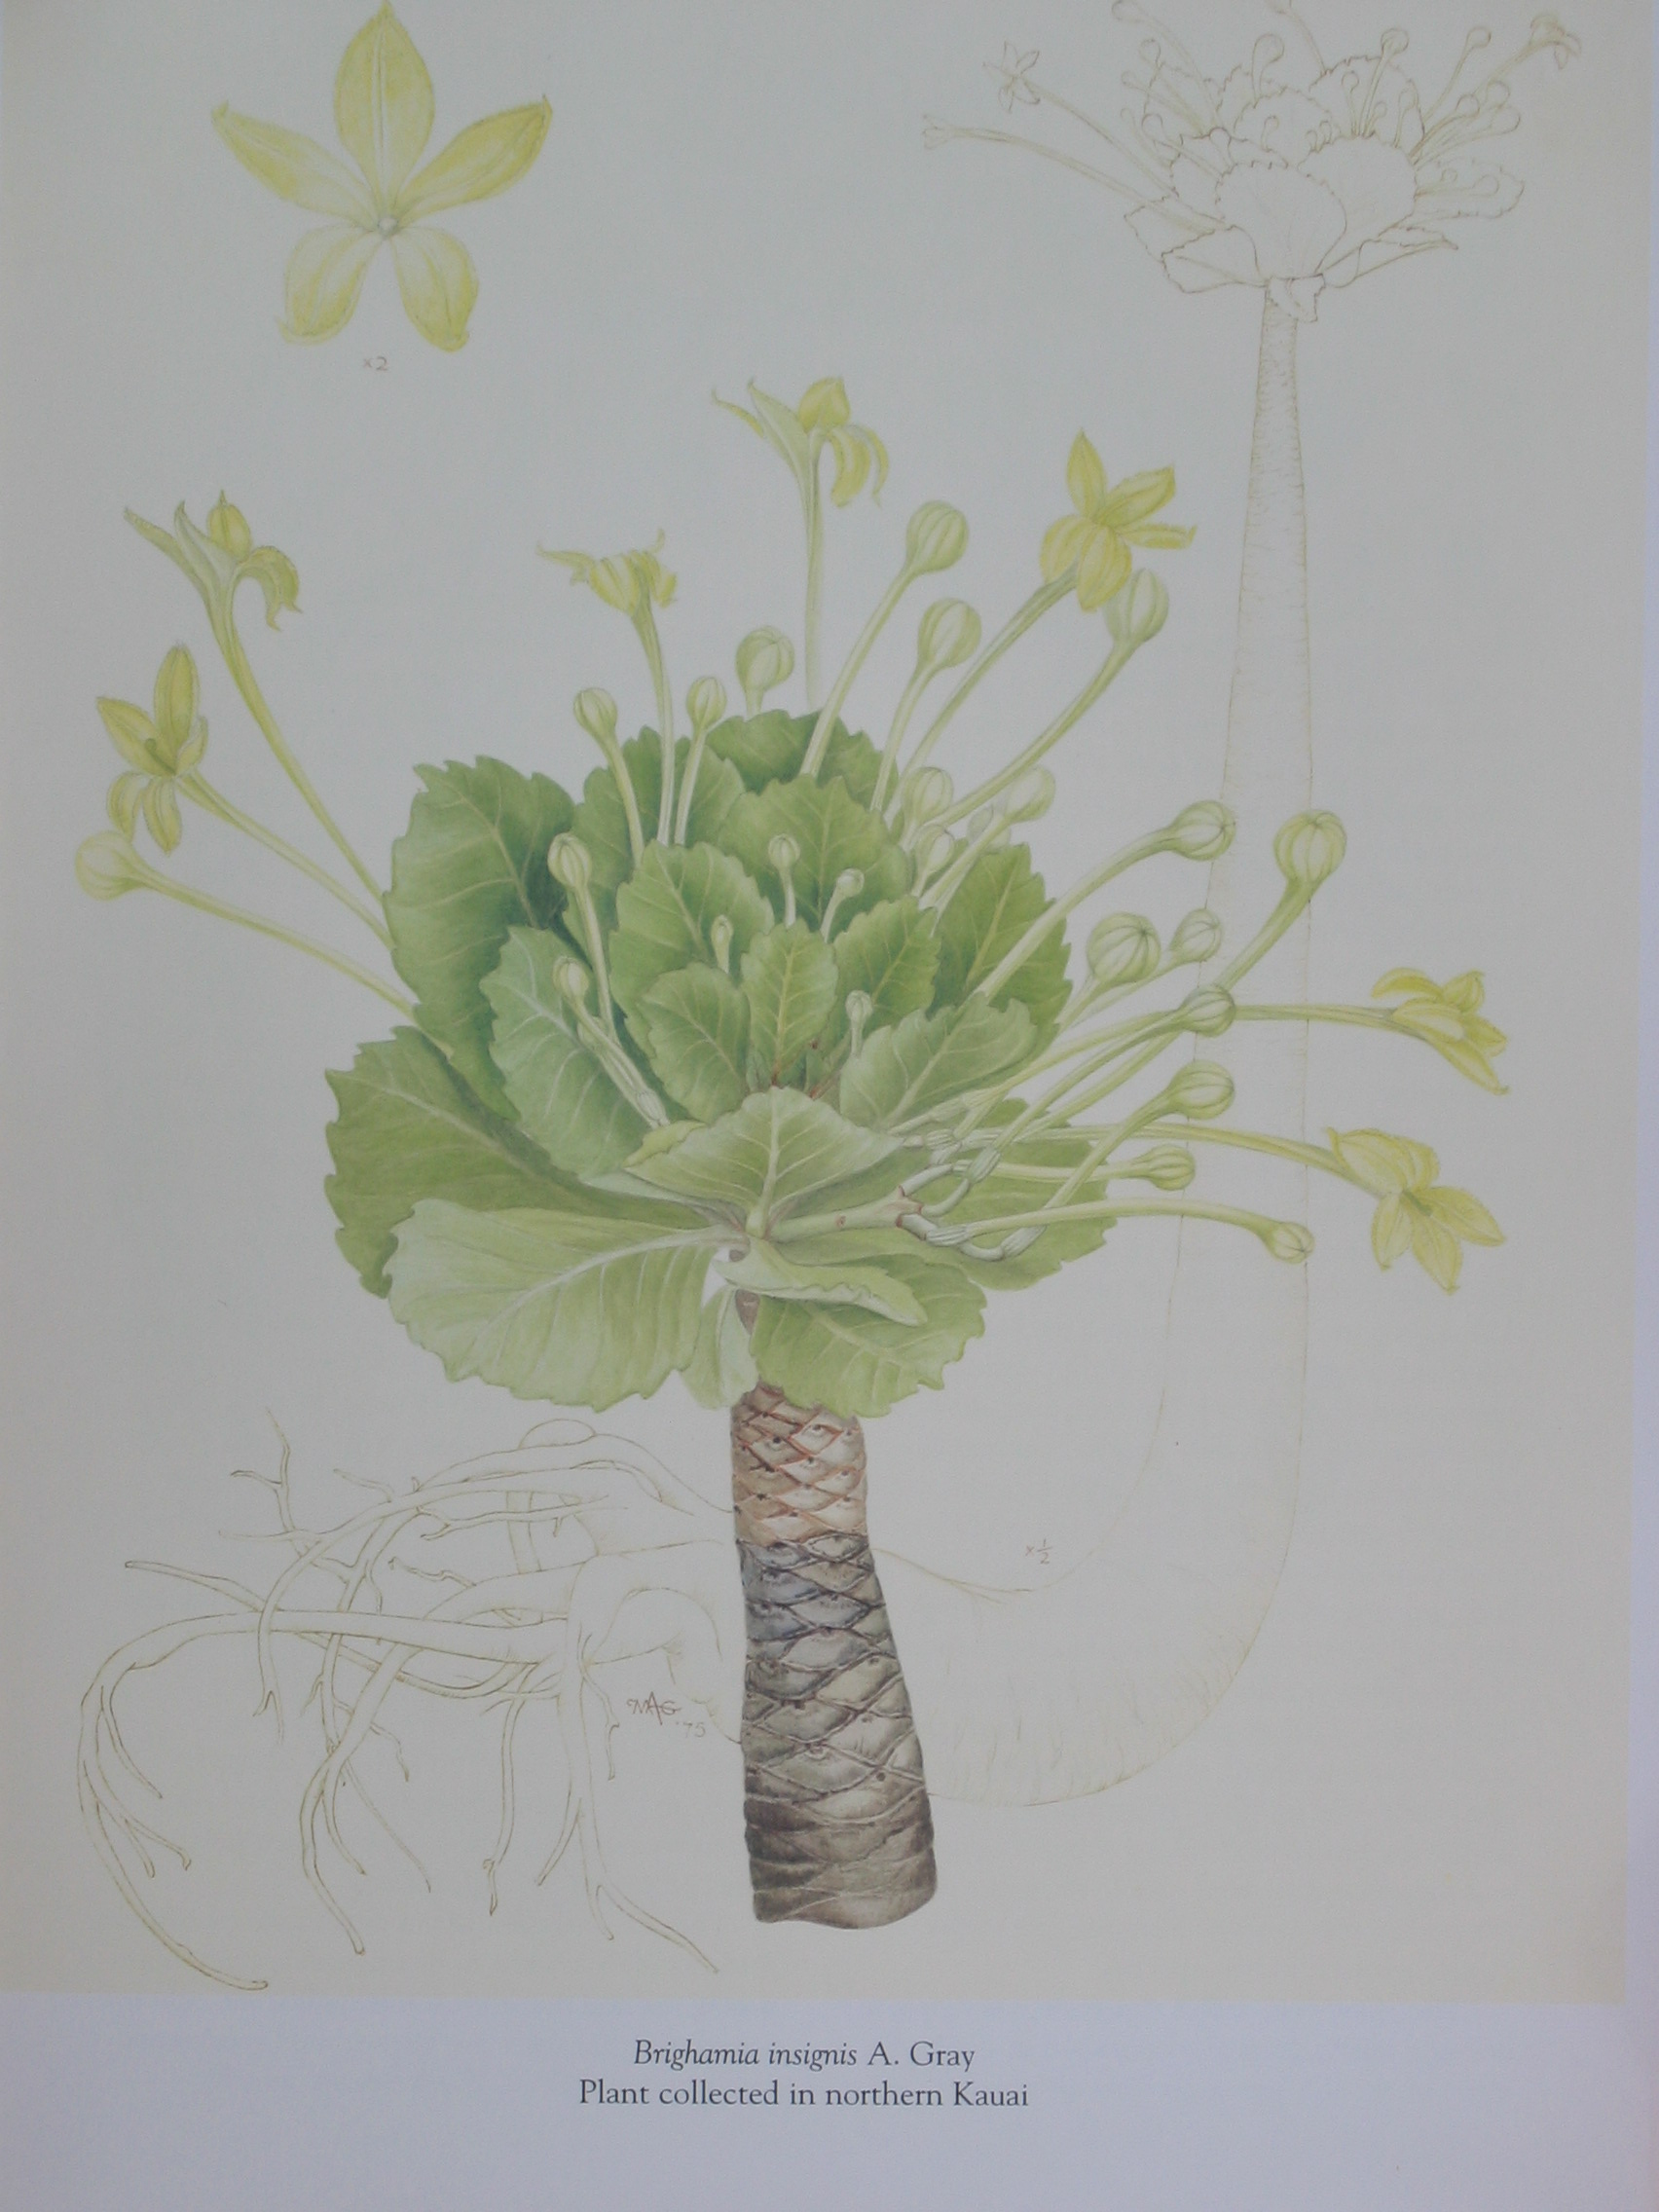 Brighamia insignis   - Watercolor